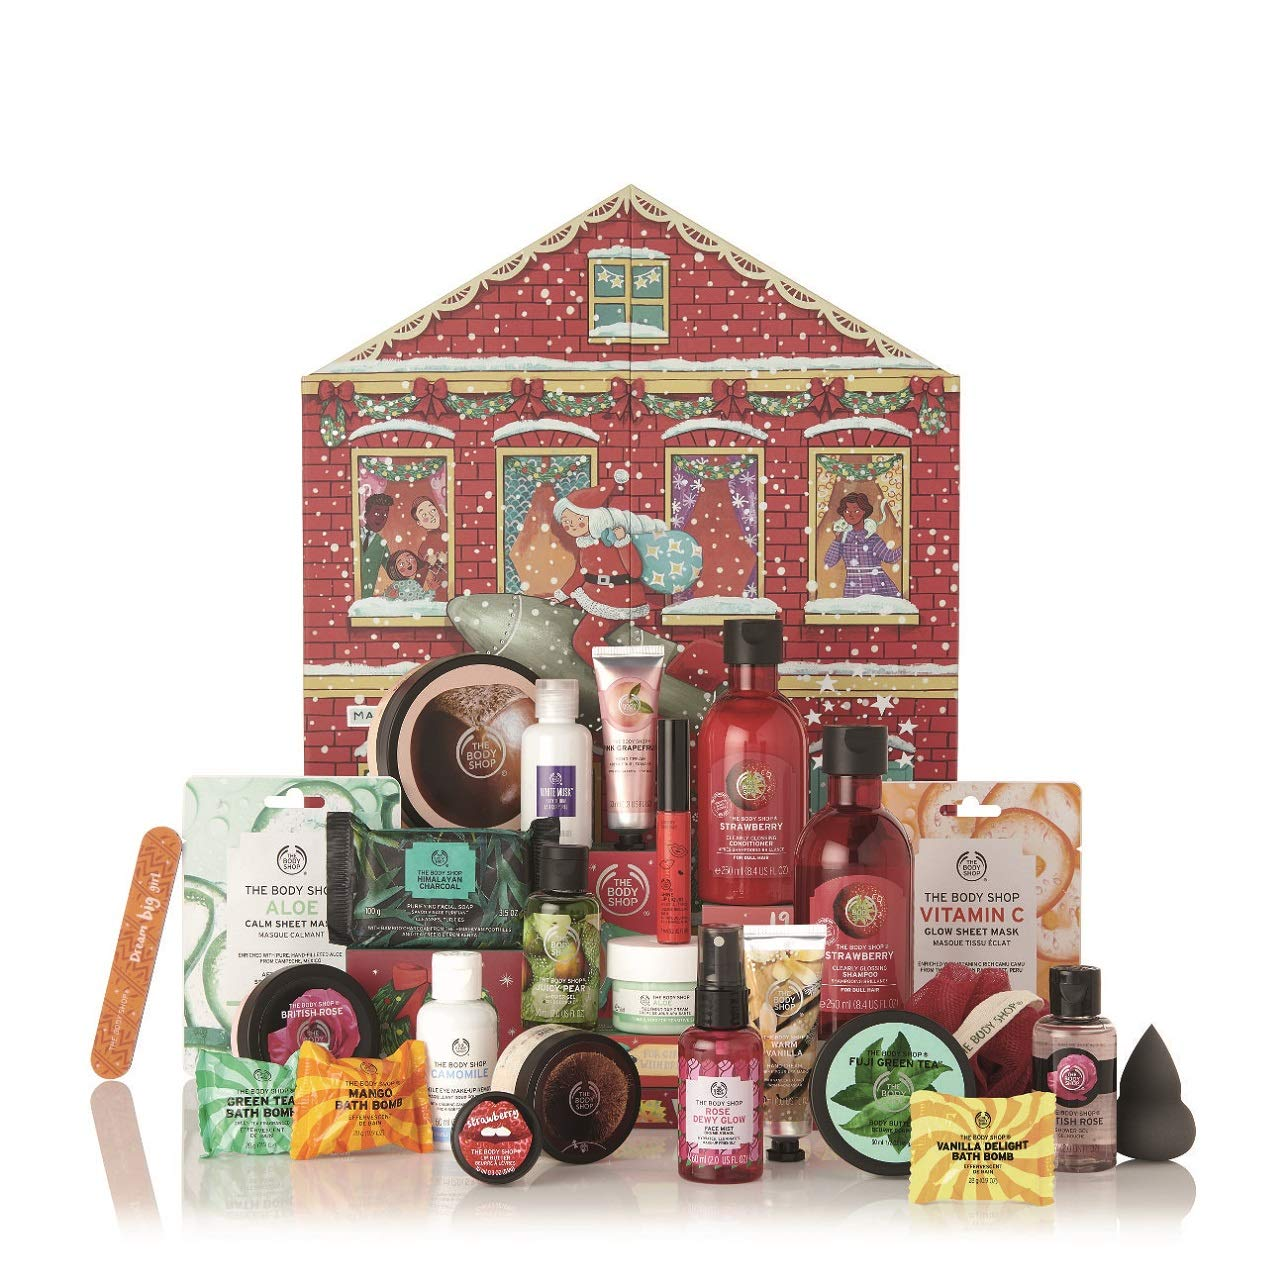 Best cruelty free beauty advent calendars 2019 - the Body Shop